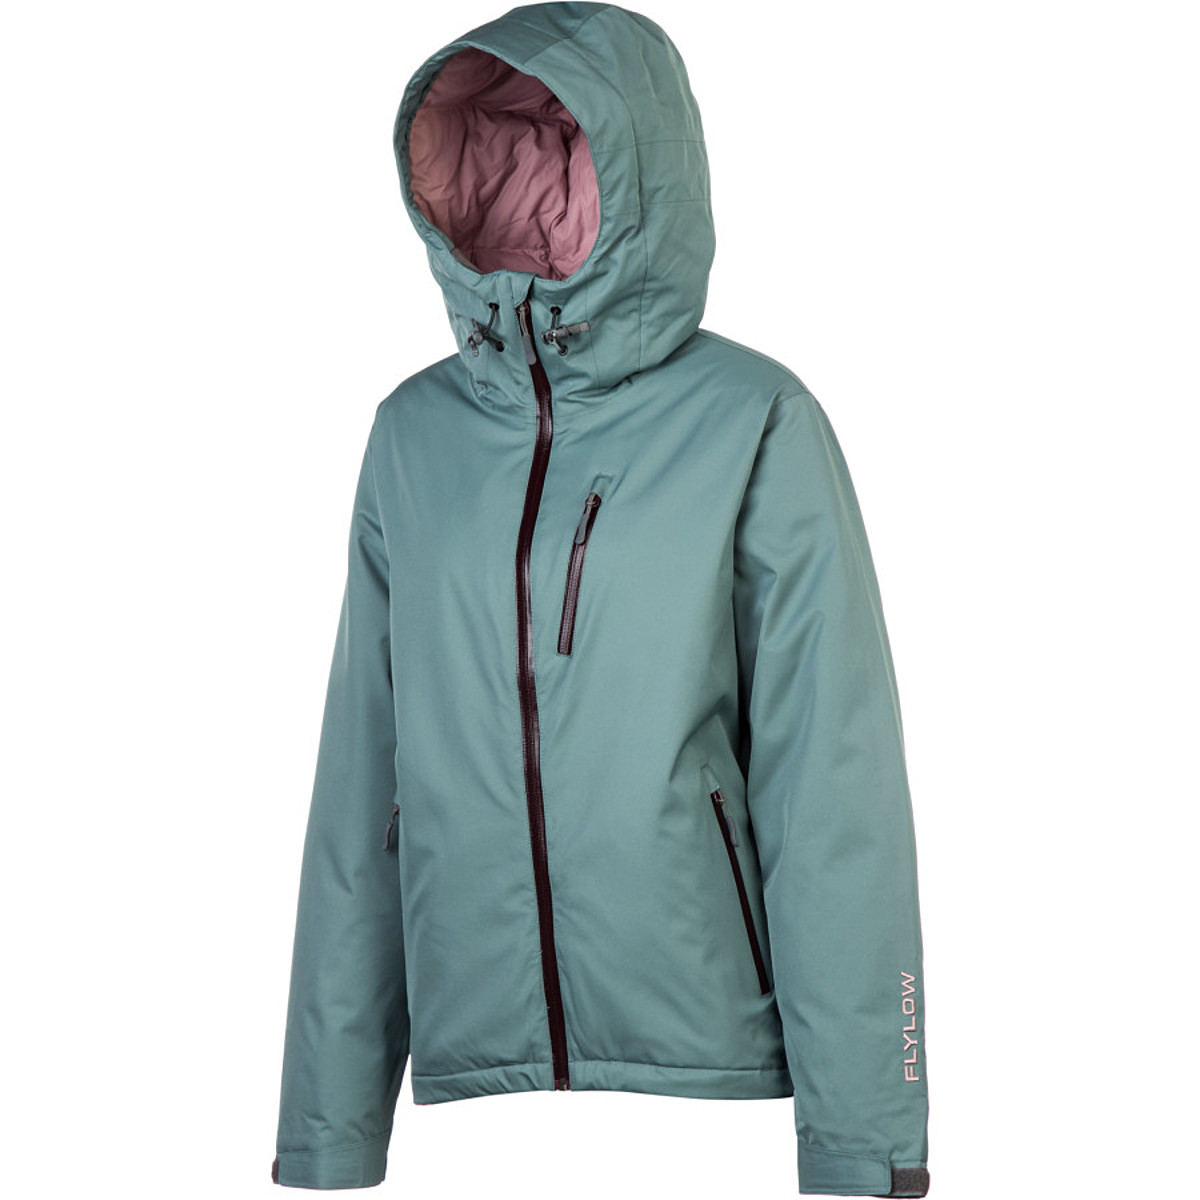 Flylow Gear Charlie Jacket